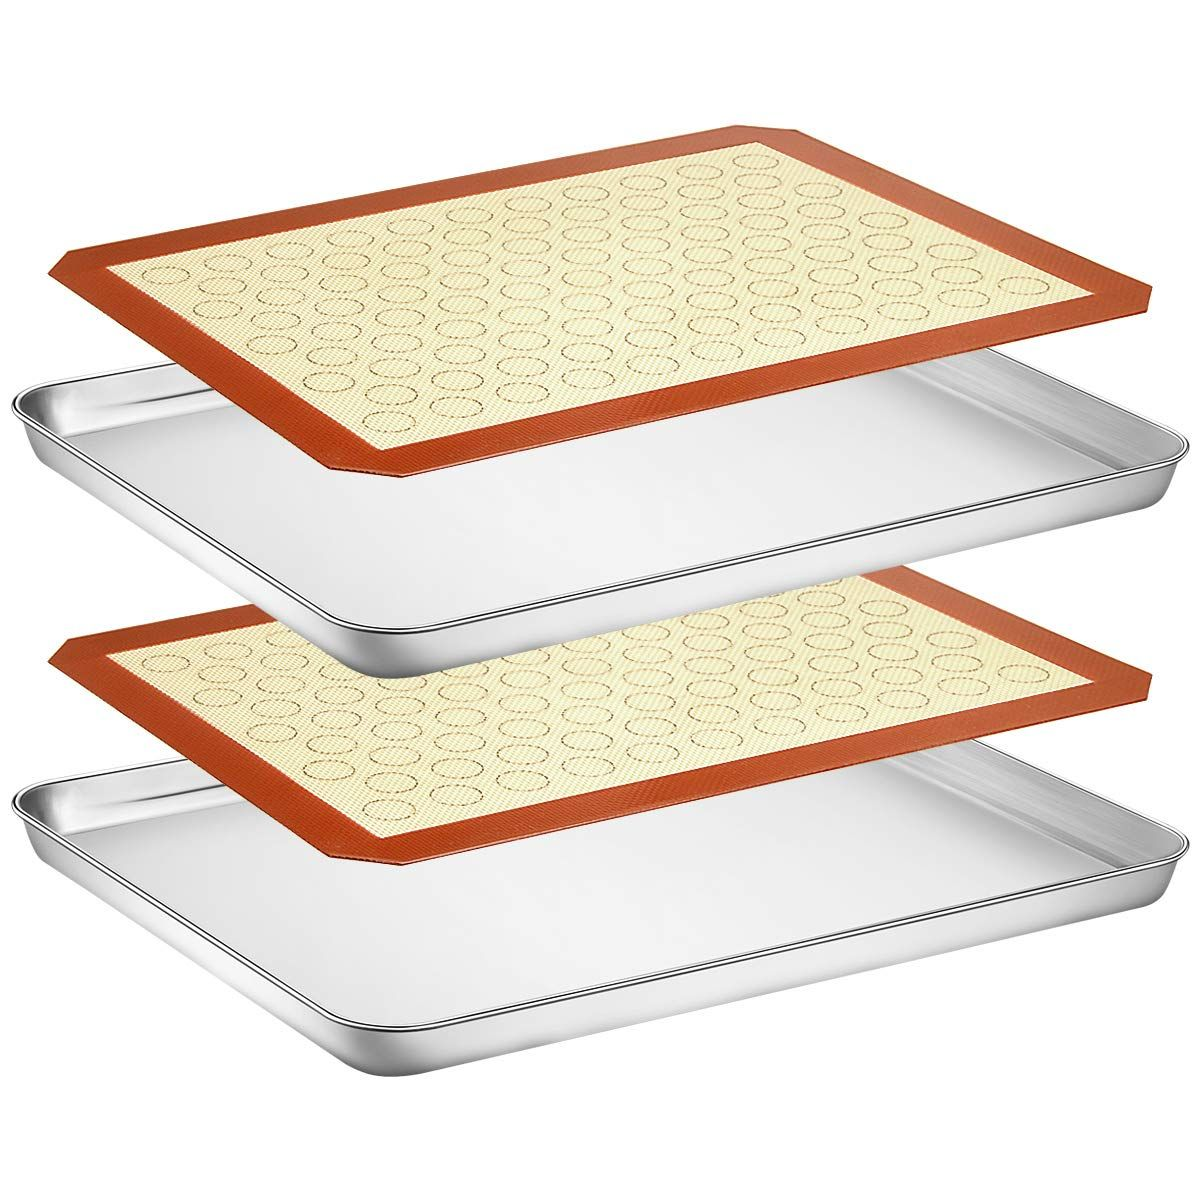 Wildone Baking Sheet With Silicone Mat Set Set Of 4 2 Sheets 2 Mats Wildone Stainless Steel Coo In 2020 Stainless Steel Cookie Sheet Baking Sheet Vintage Recipes